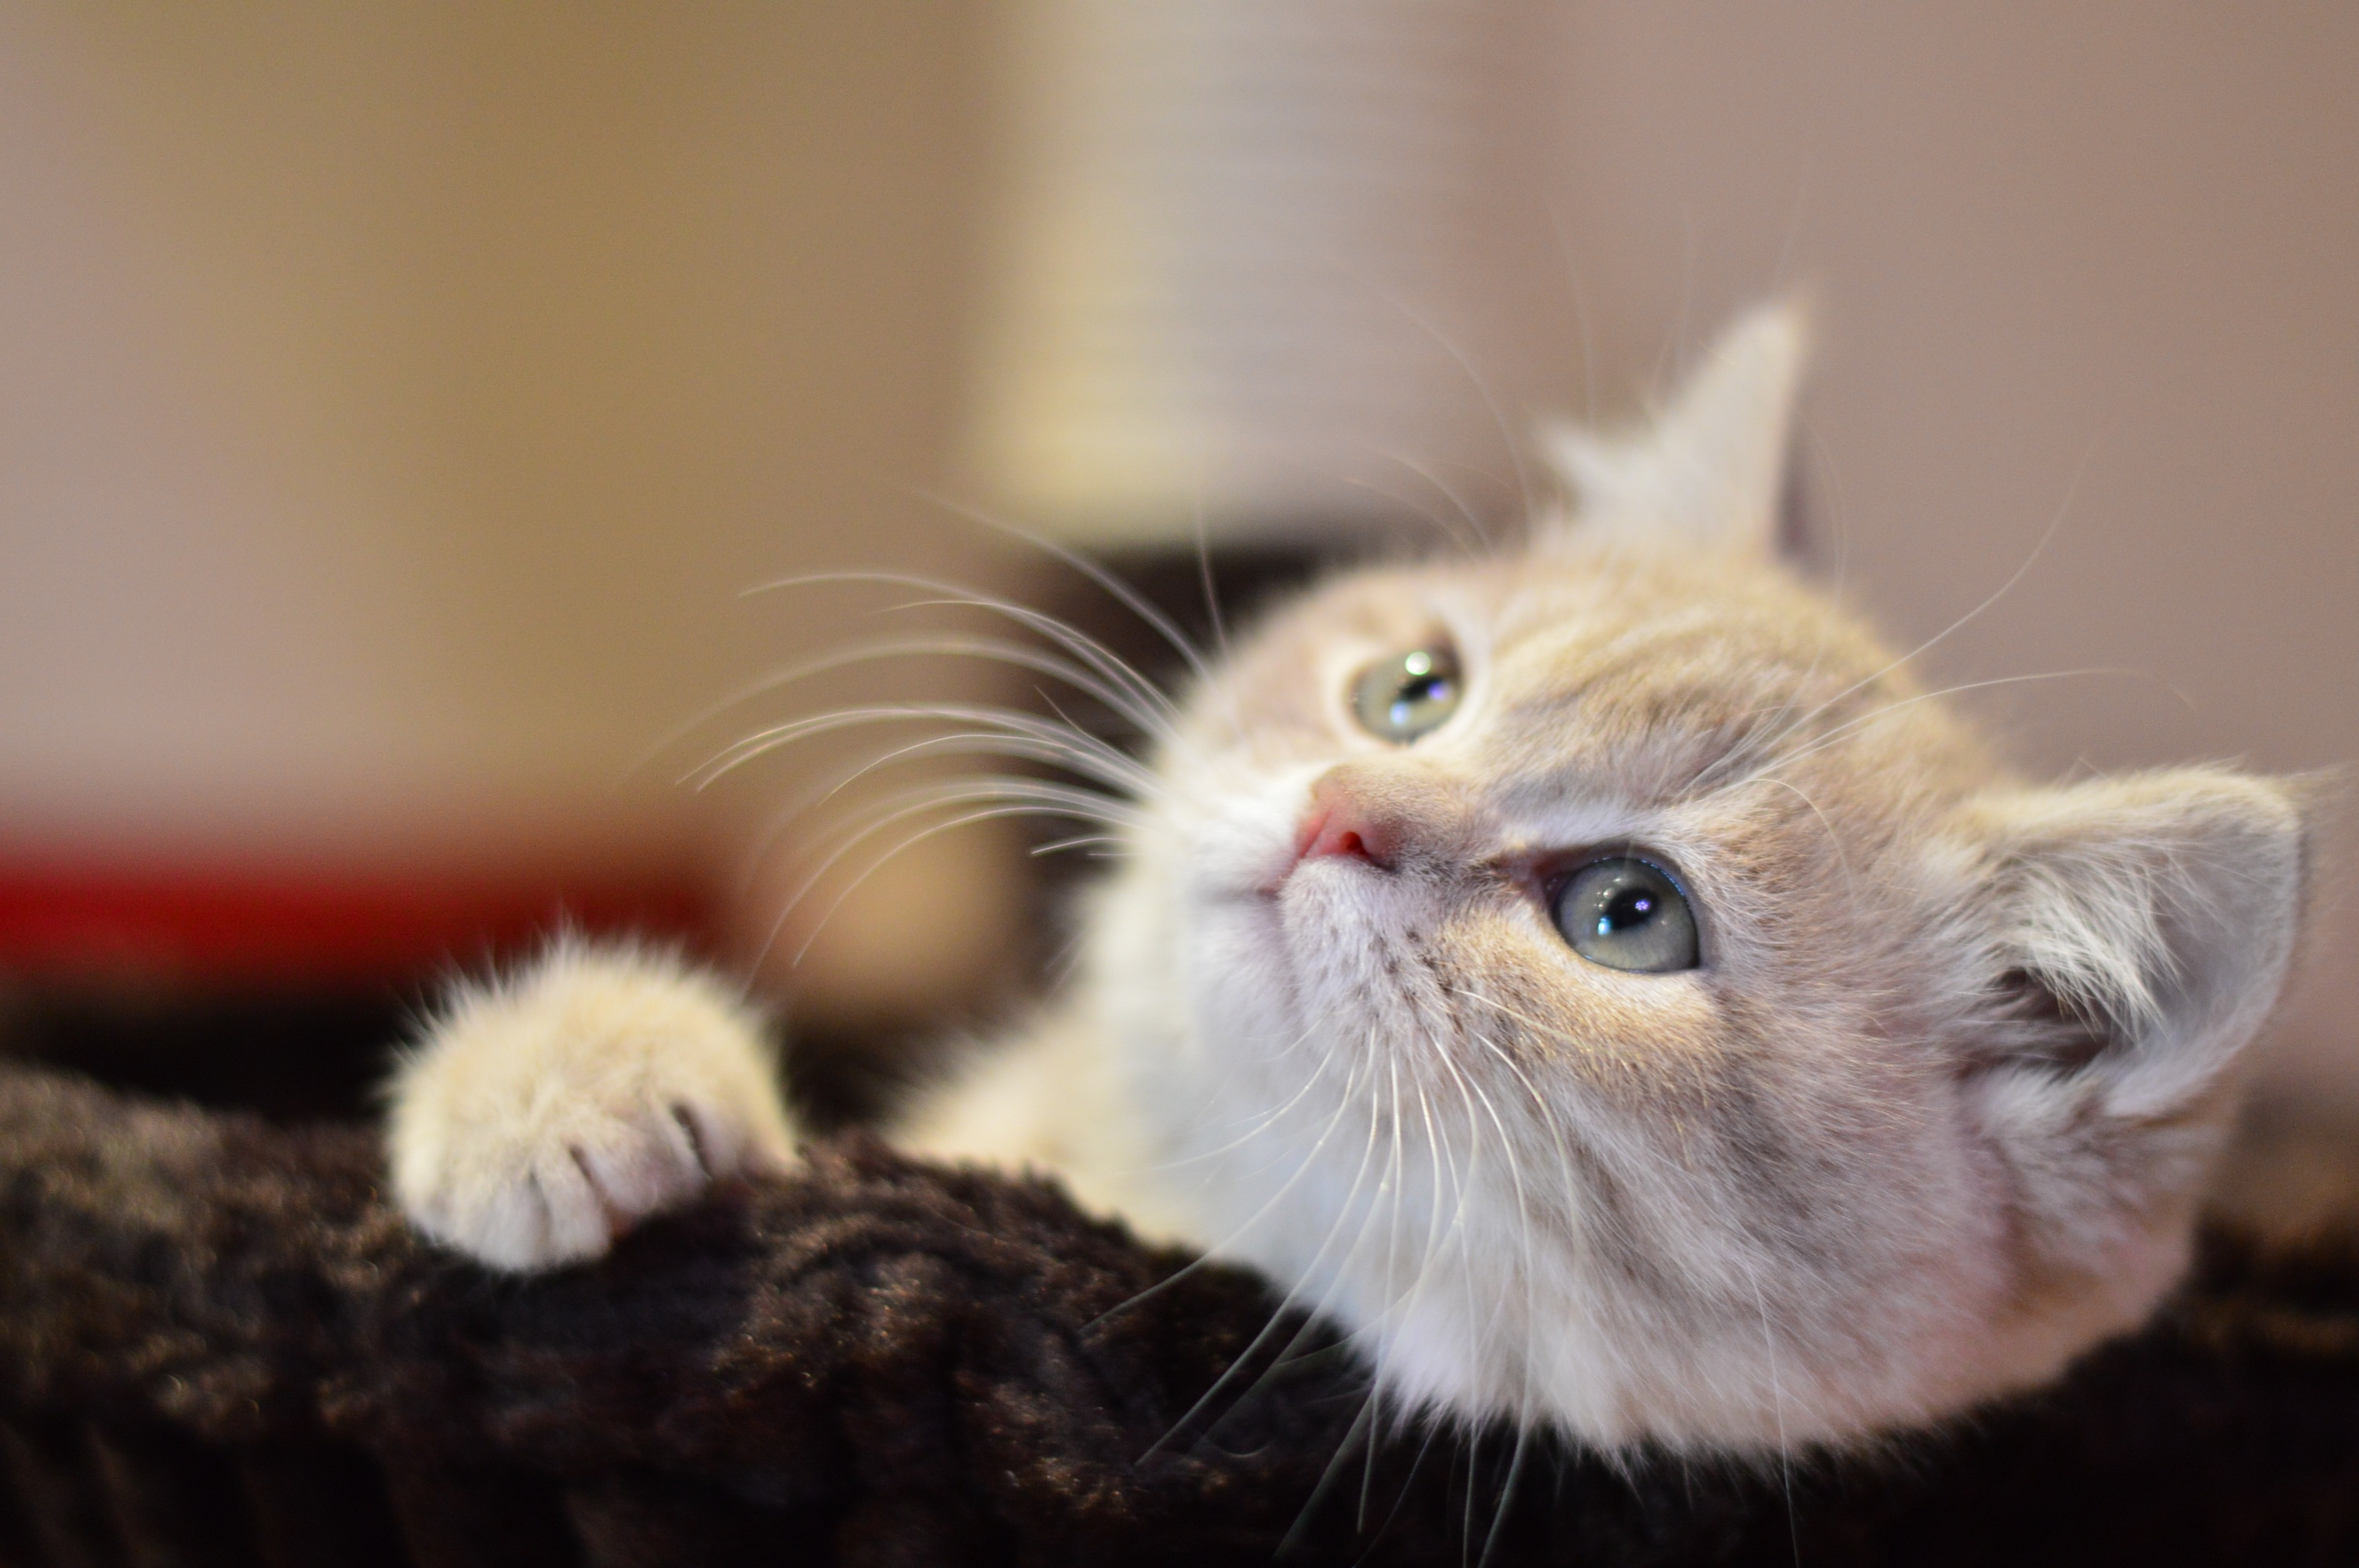 Wallpapers Hd Iphone 5 Free Stock Photo Of Animal Cat Cute